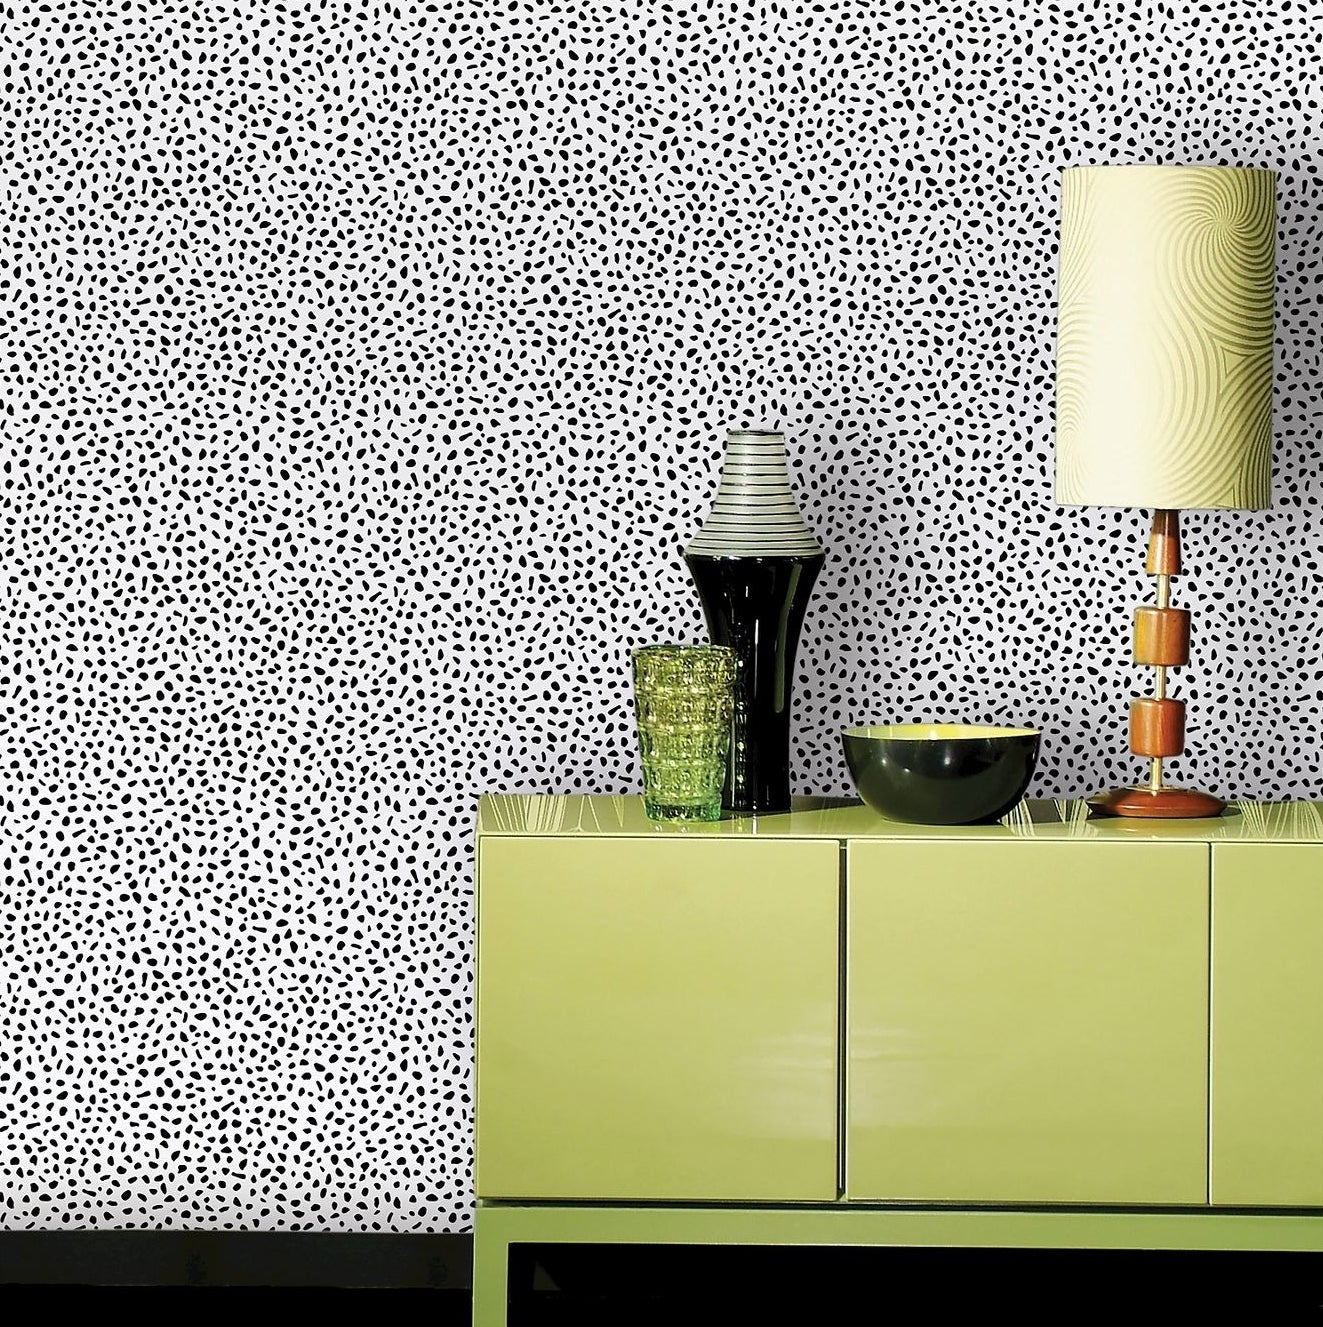 dotted wallpaper on a wall with green furniture in front of it